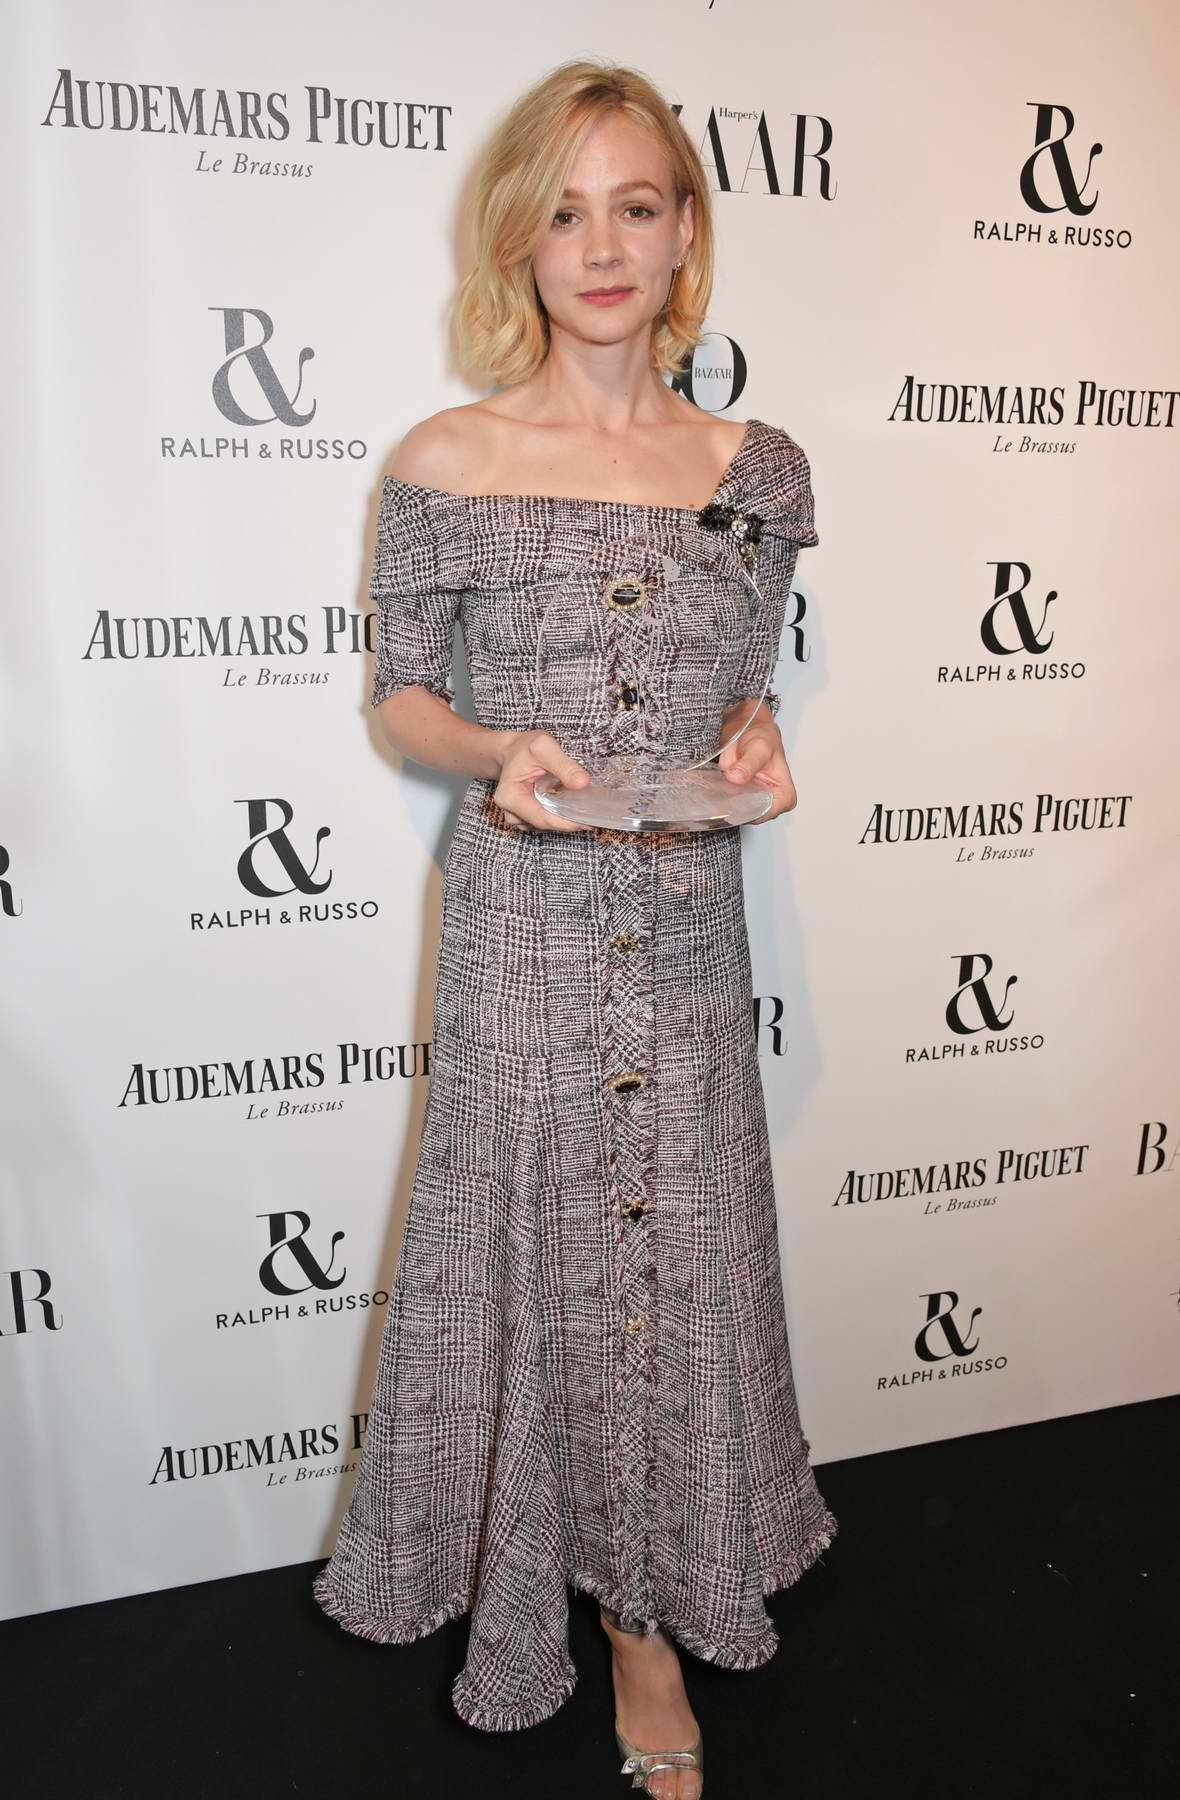 Carey Mulligan at the Harper's Bazaar Women of the Year Awards in London